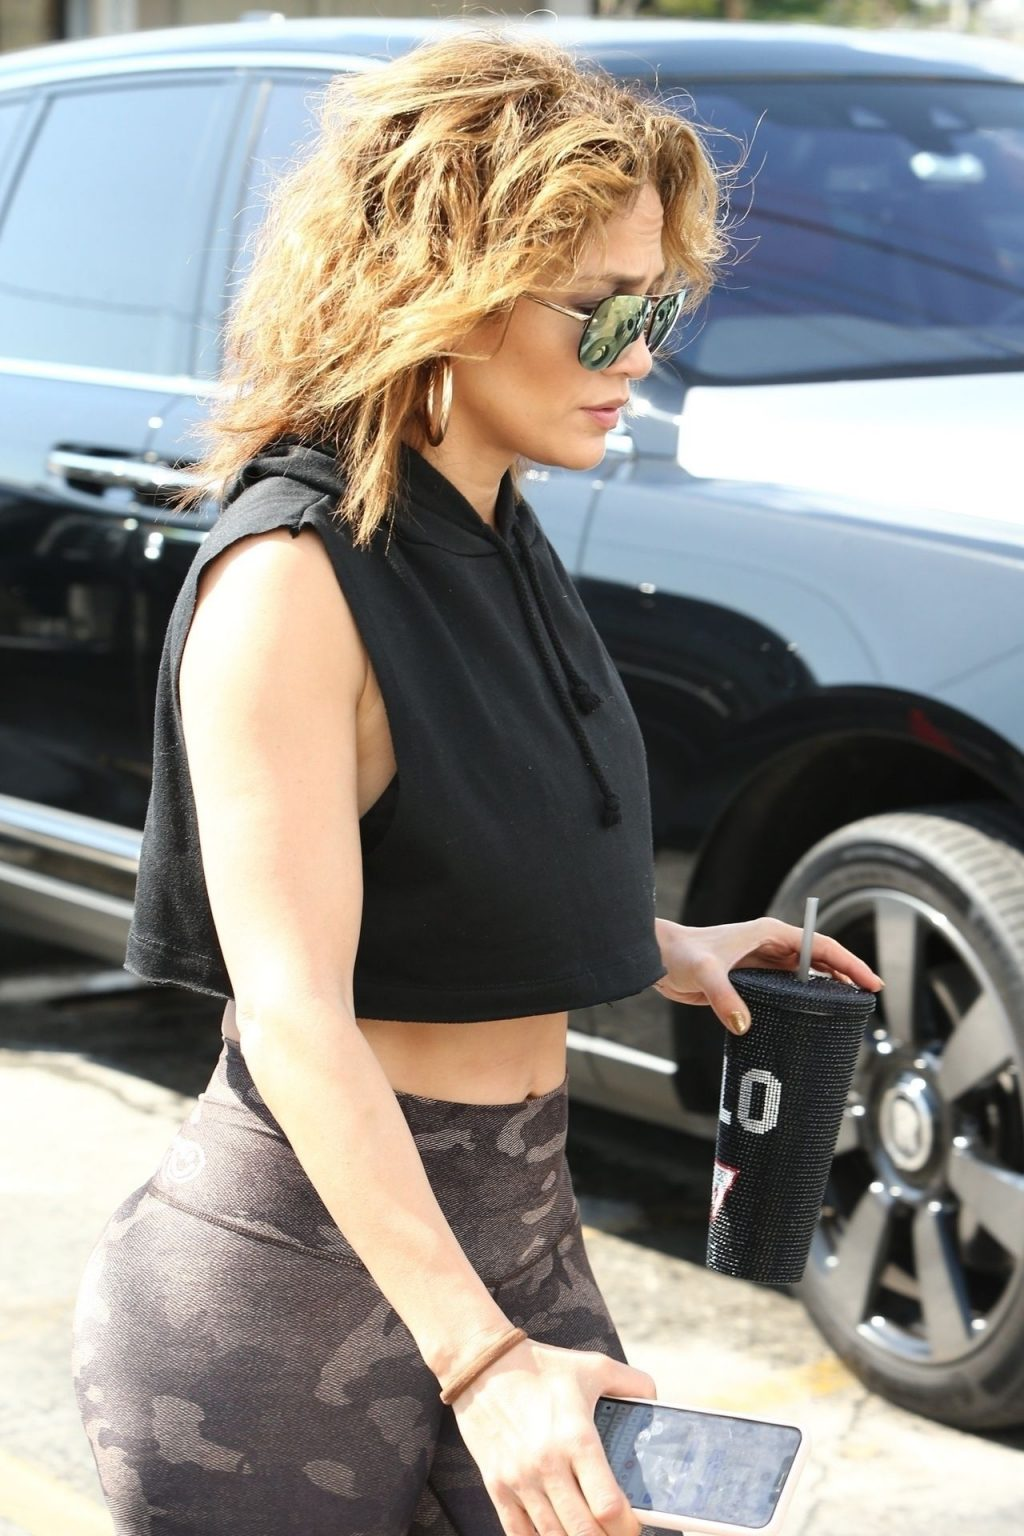 Jennifer Lopez Sexy The Fappening Blog 2 1024x1536 - Jennifer Lopez Shows That Rock Hard Abs Don't Just Happen as She Dutifully Hits the Gym in Miami (48 Photos)